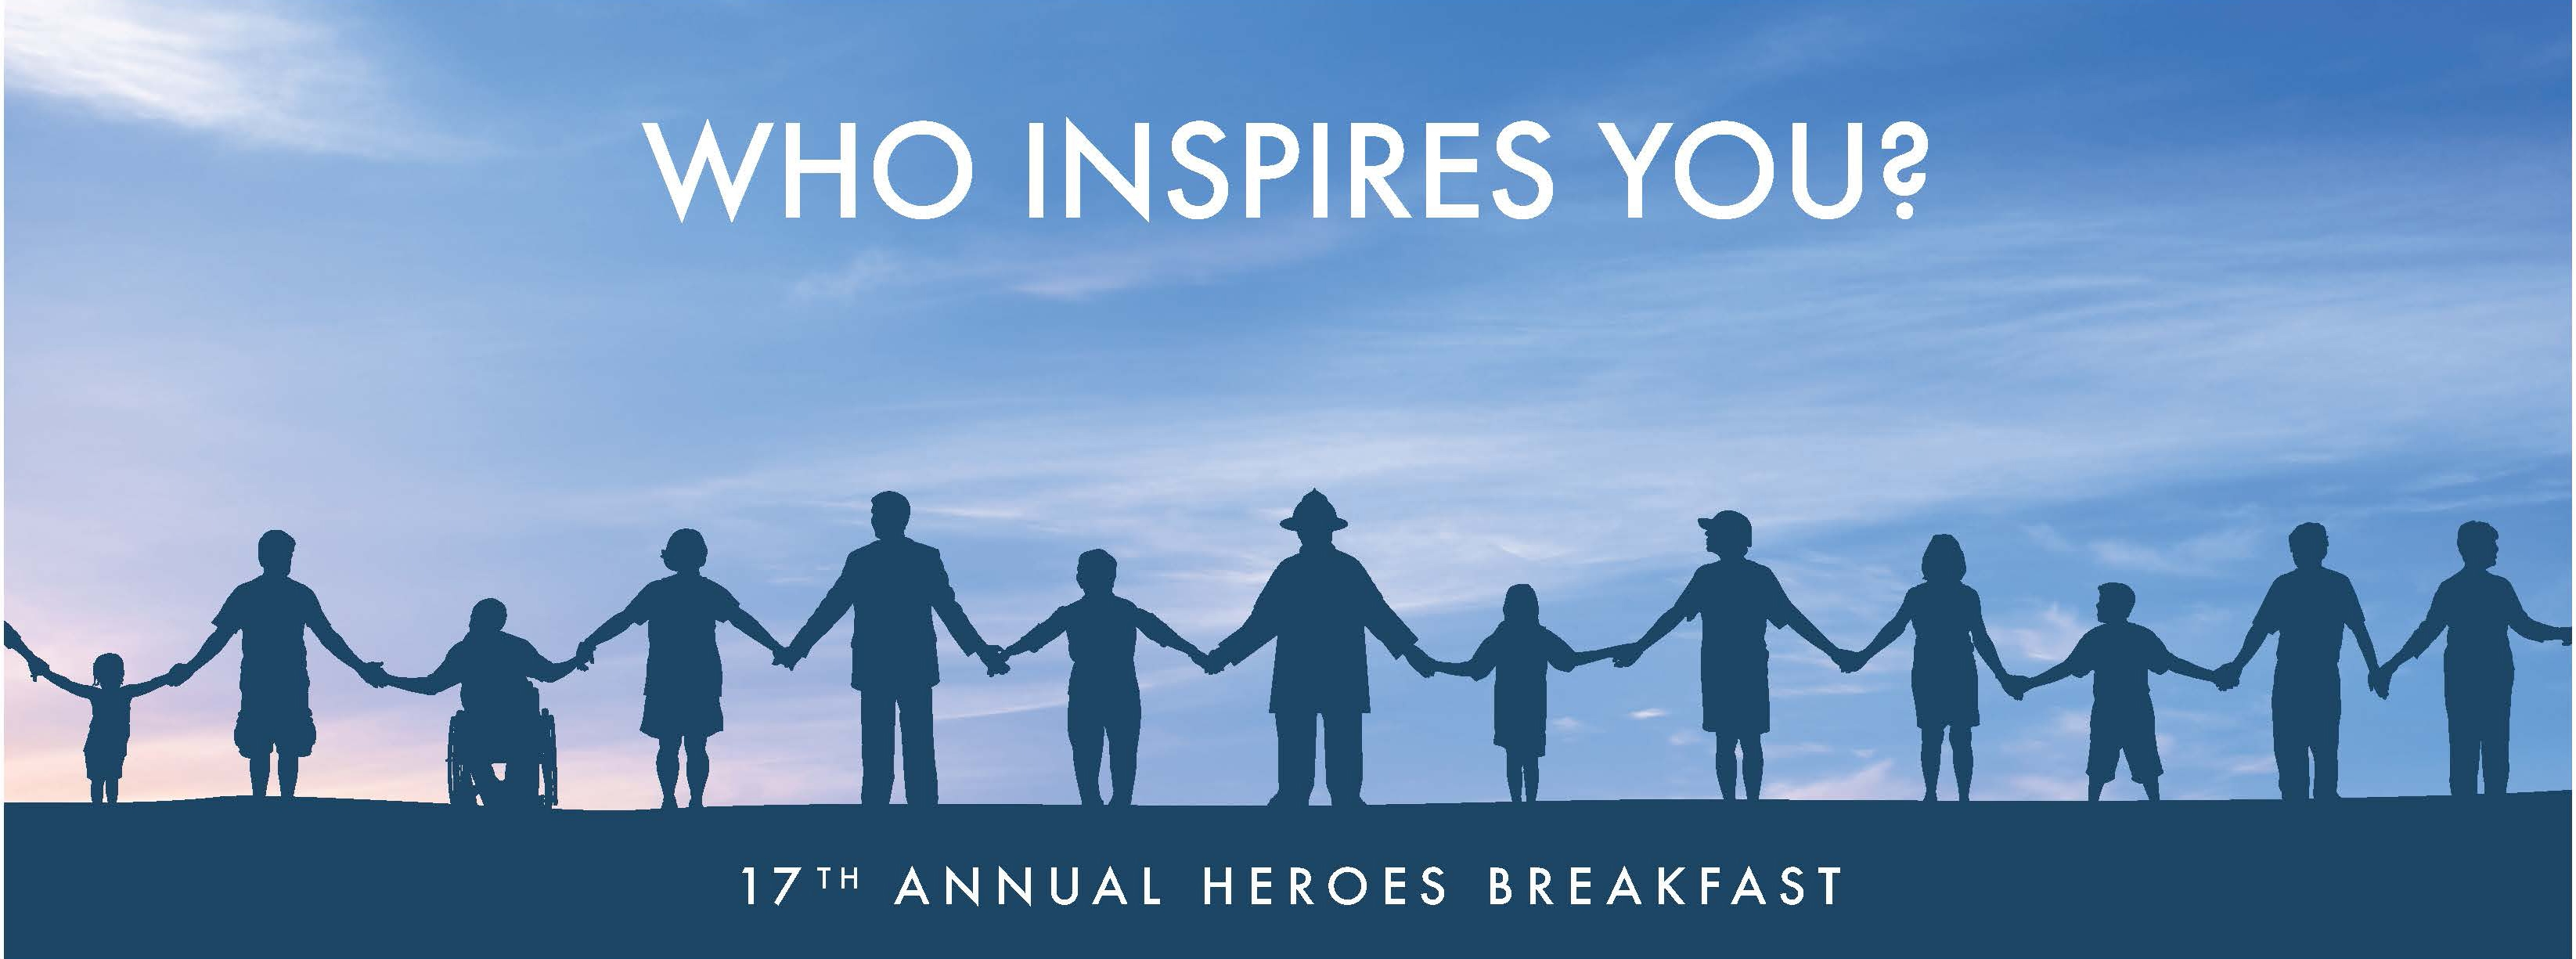 Chicago Red Cross Heroes Breakfast - Who Inspires You? - Shadow of people holding hands